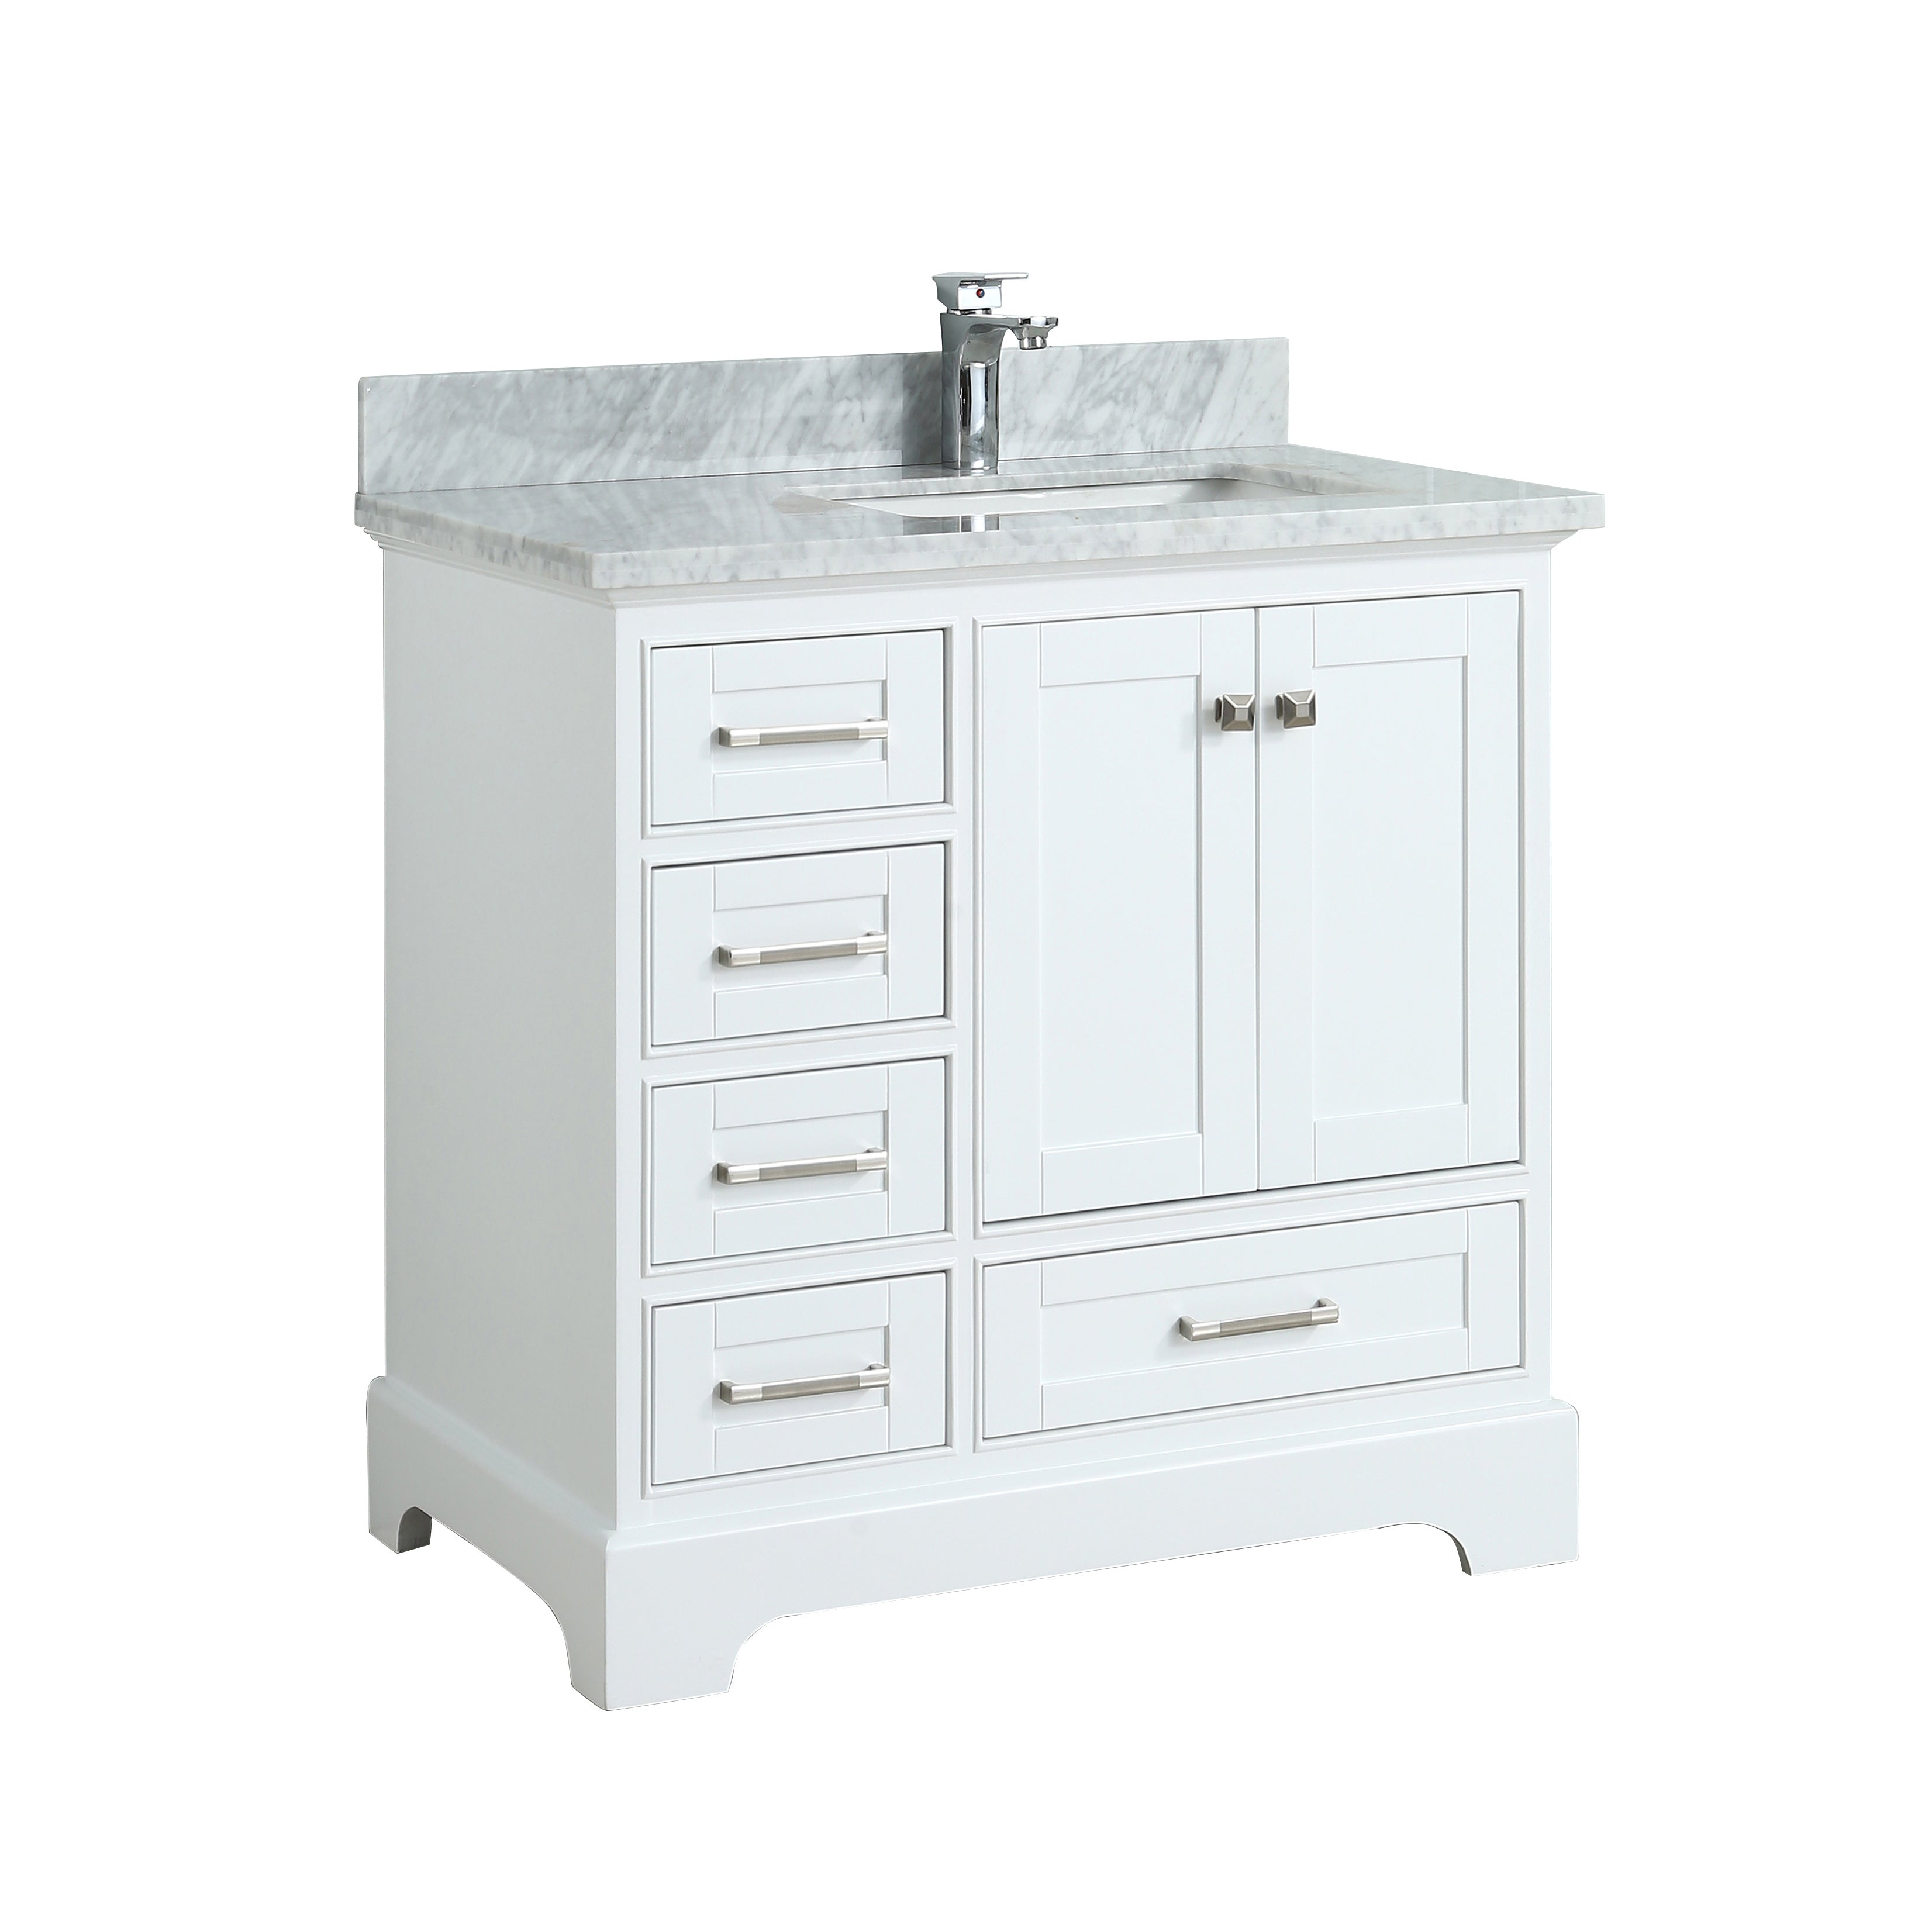 Maquinna Bathroom Vanity In Toga White   36 Inch U2013 Right Offset Basin